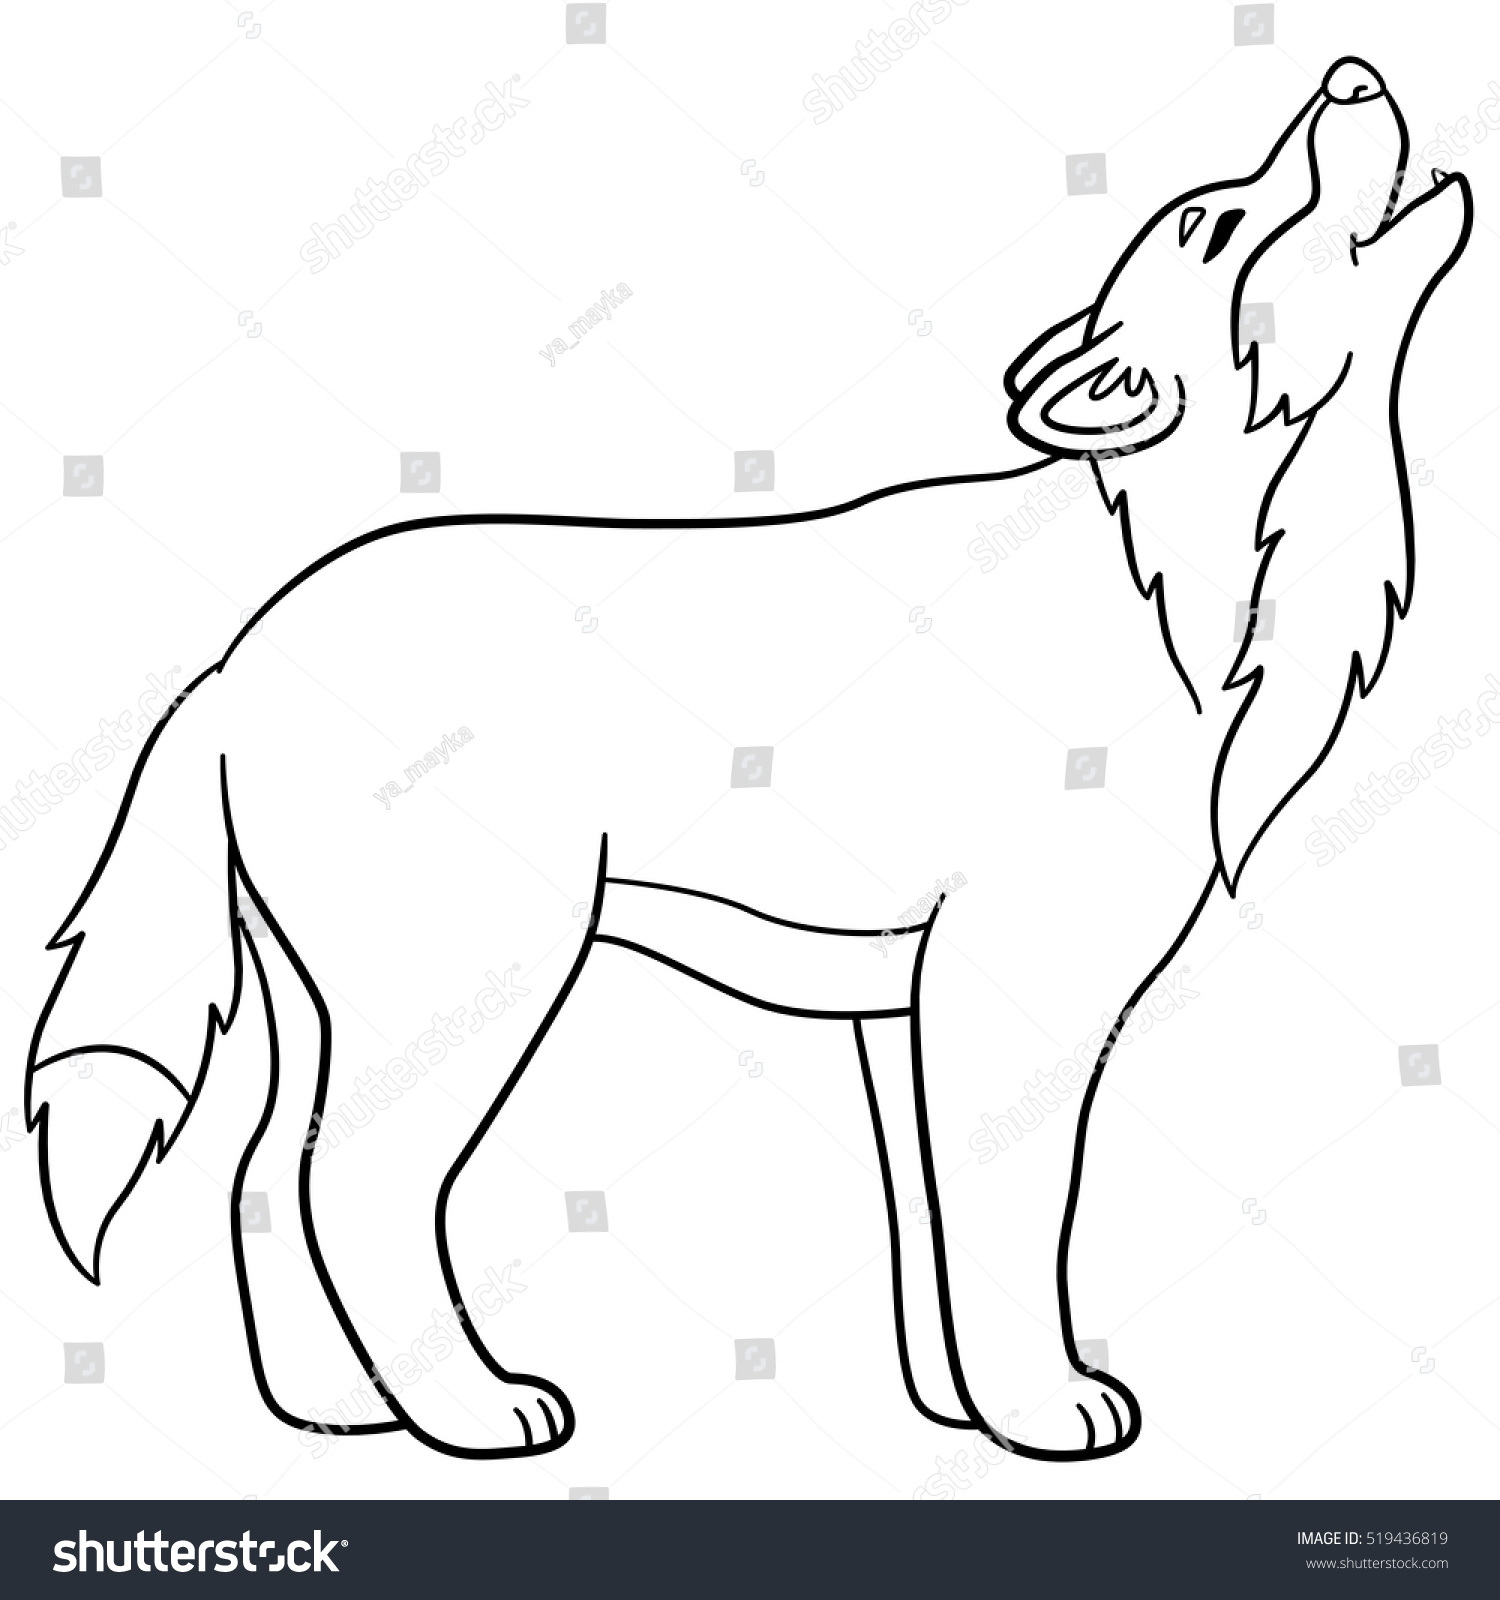 Royalty-free Coloring pages. Cute beautiful wolf… #519436819 Stock ...